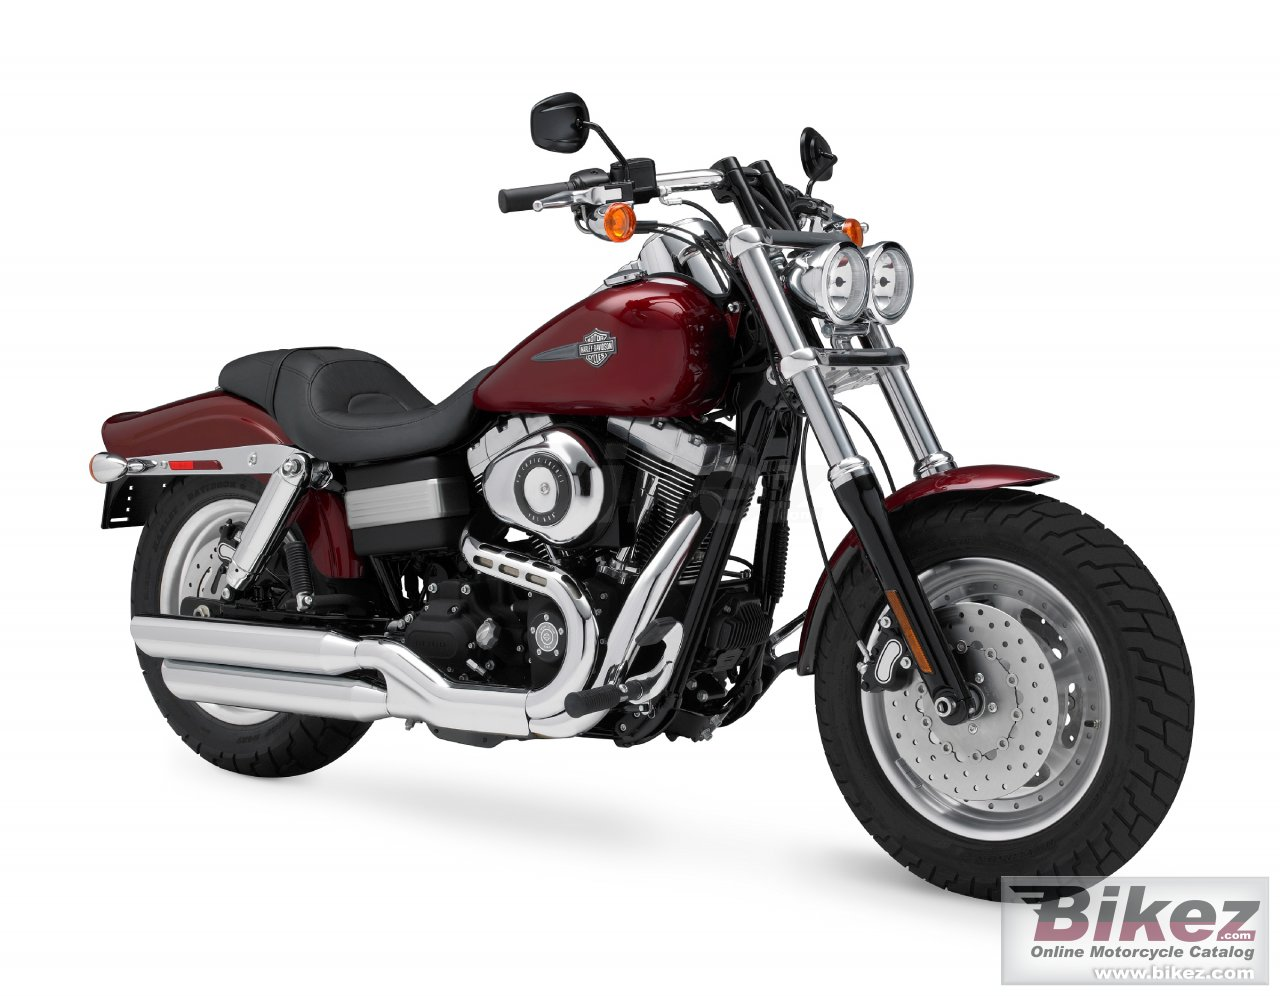 Big Harley-Davidson fxdf dyna fat bob picture and wallpaper from Bikez.com